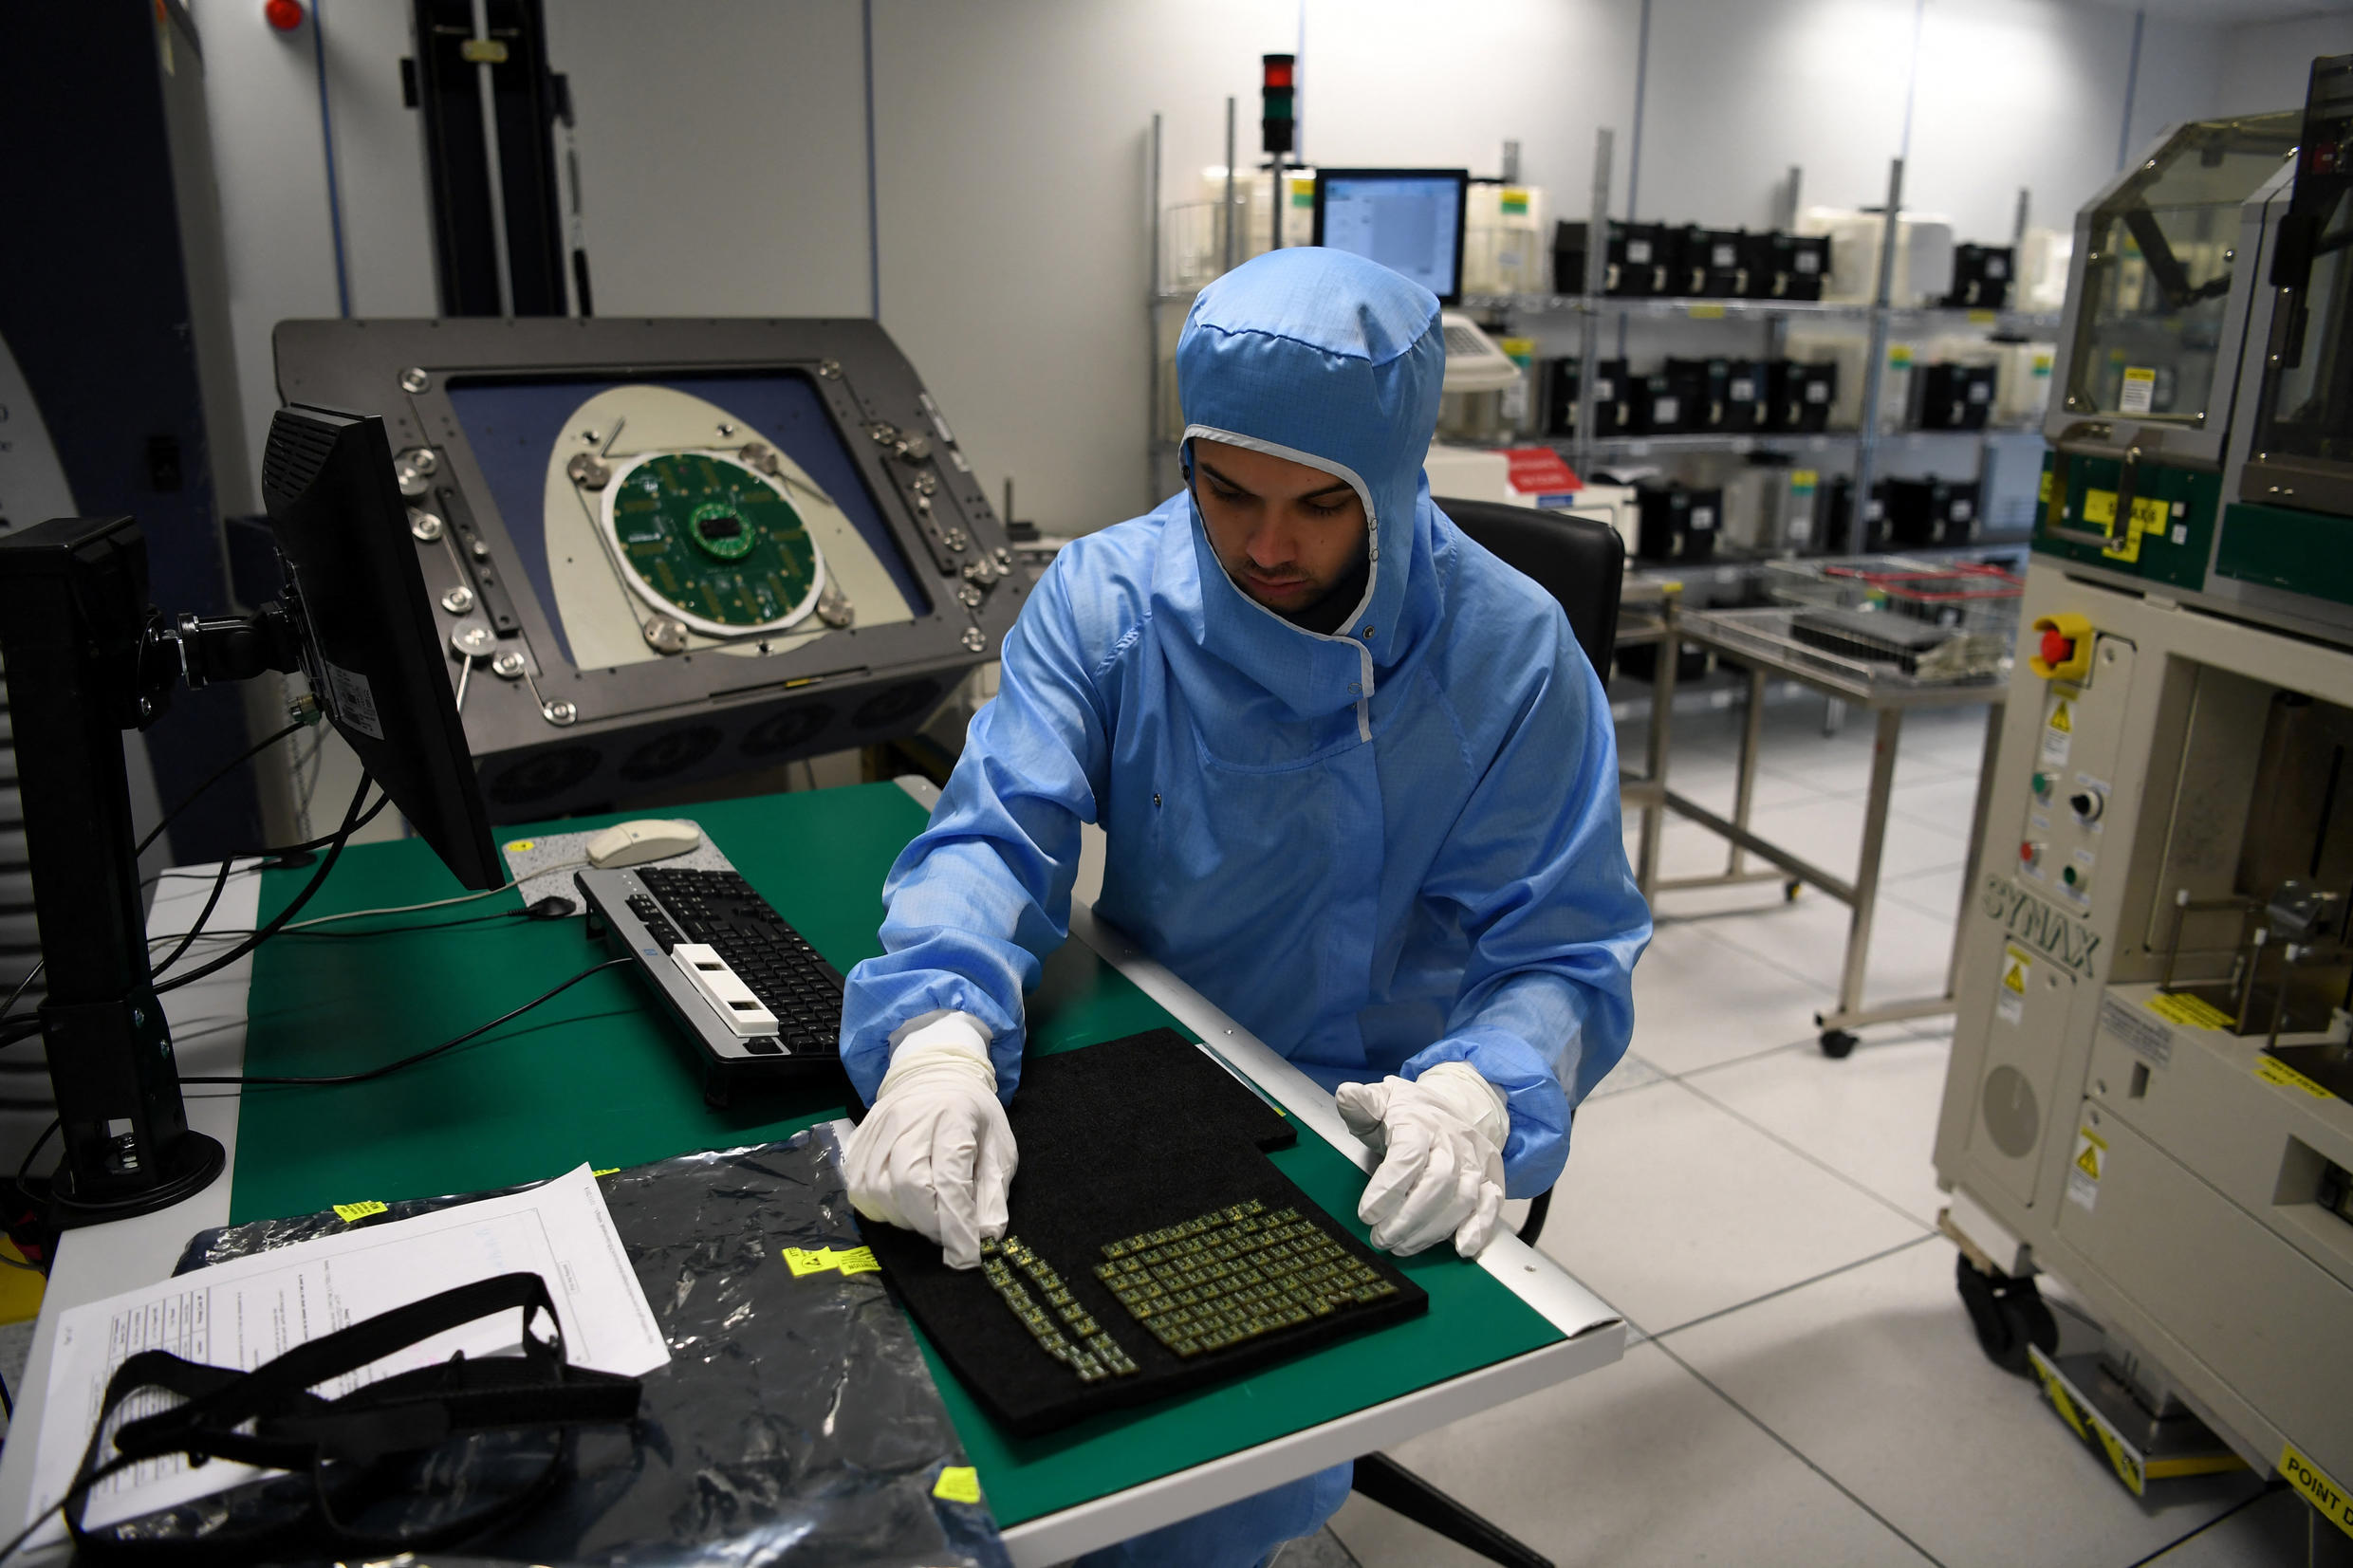 A technician checks electronic chips in the lab of STMicroelelectronics on November 15, 2018 in Grenoble.